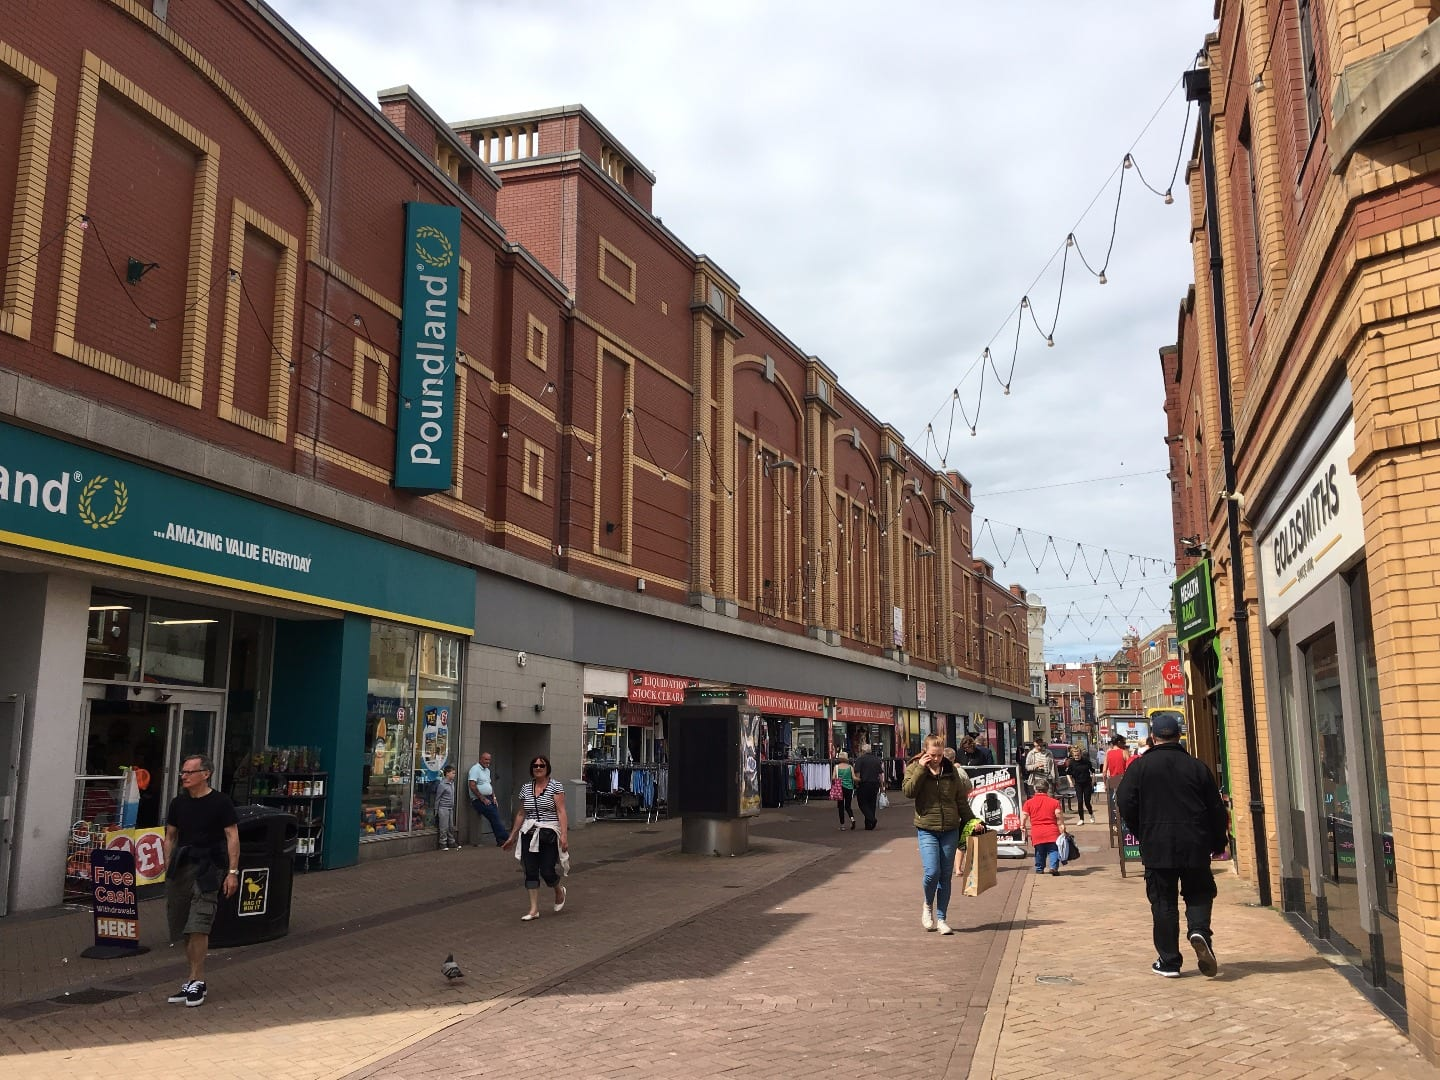 Bank Hey Street in Blackpool town centre